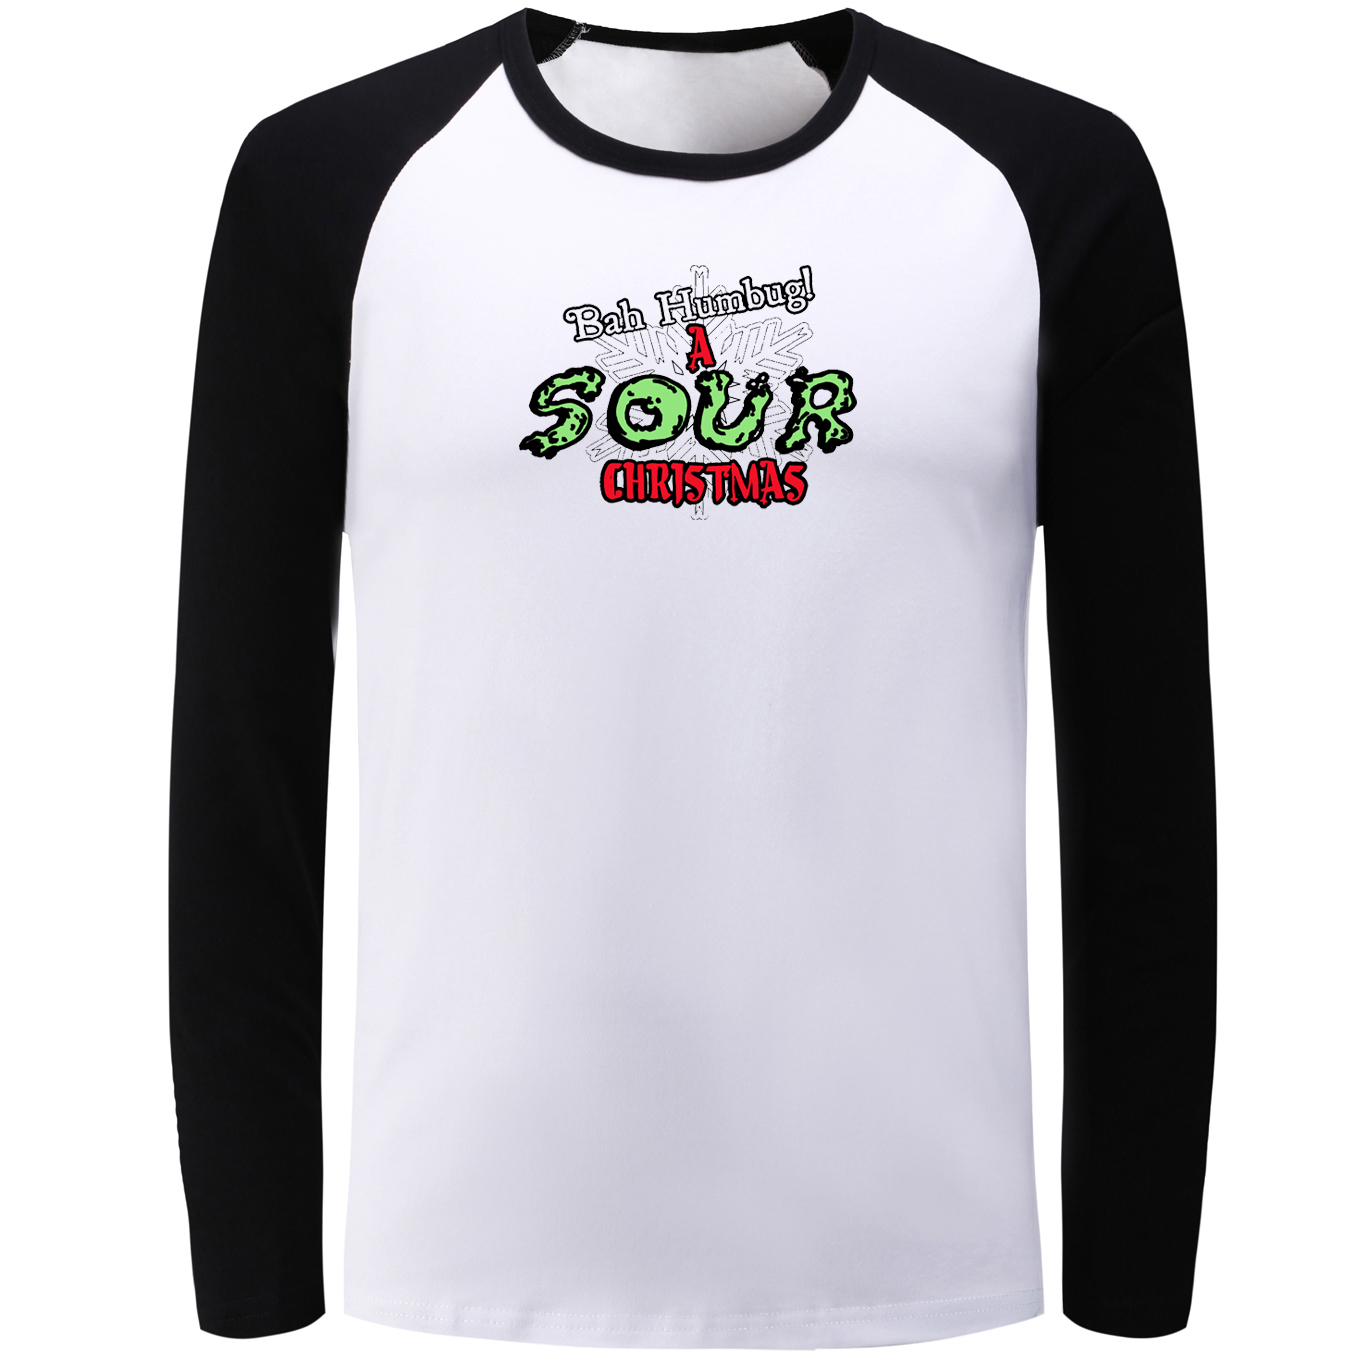 IDzn Spring Autumn Raglan Long Sleeve T-shirt BAH HUMBUG A SOUR CHRISTMAS Pattern T Shirt Men Women Boy Fashion Cotton Tee Tops